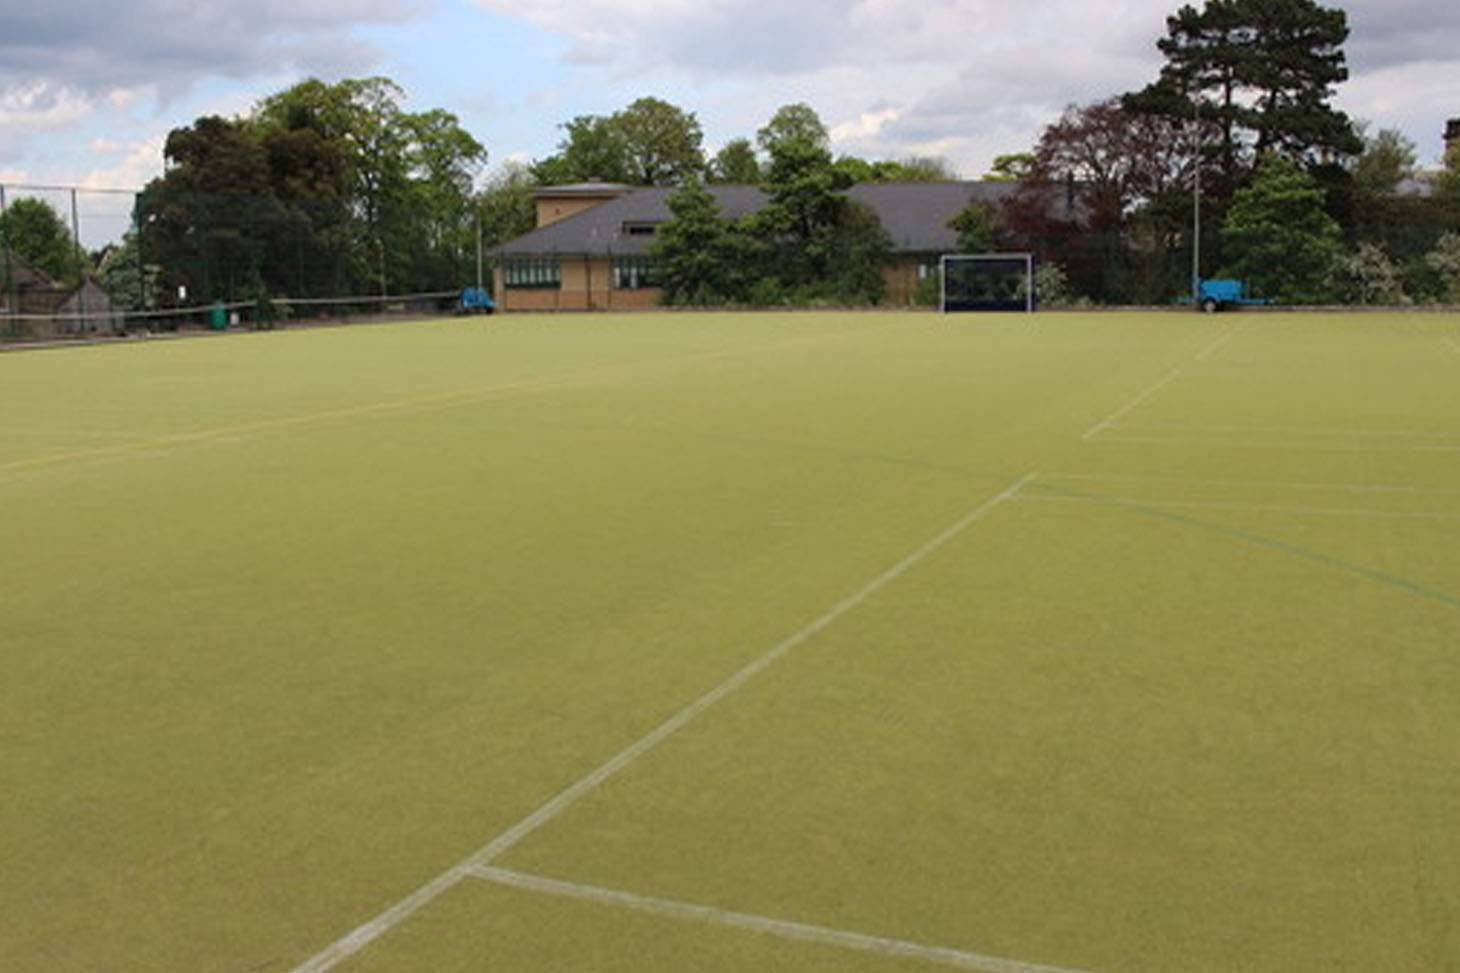 Hull Collegiate School 11 a side | Astroturf football pitch